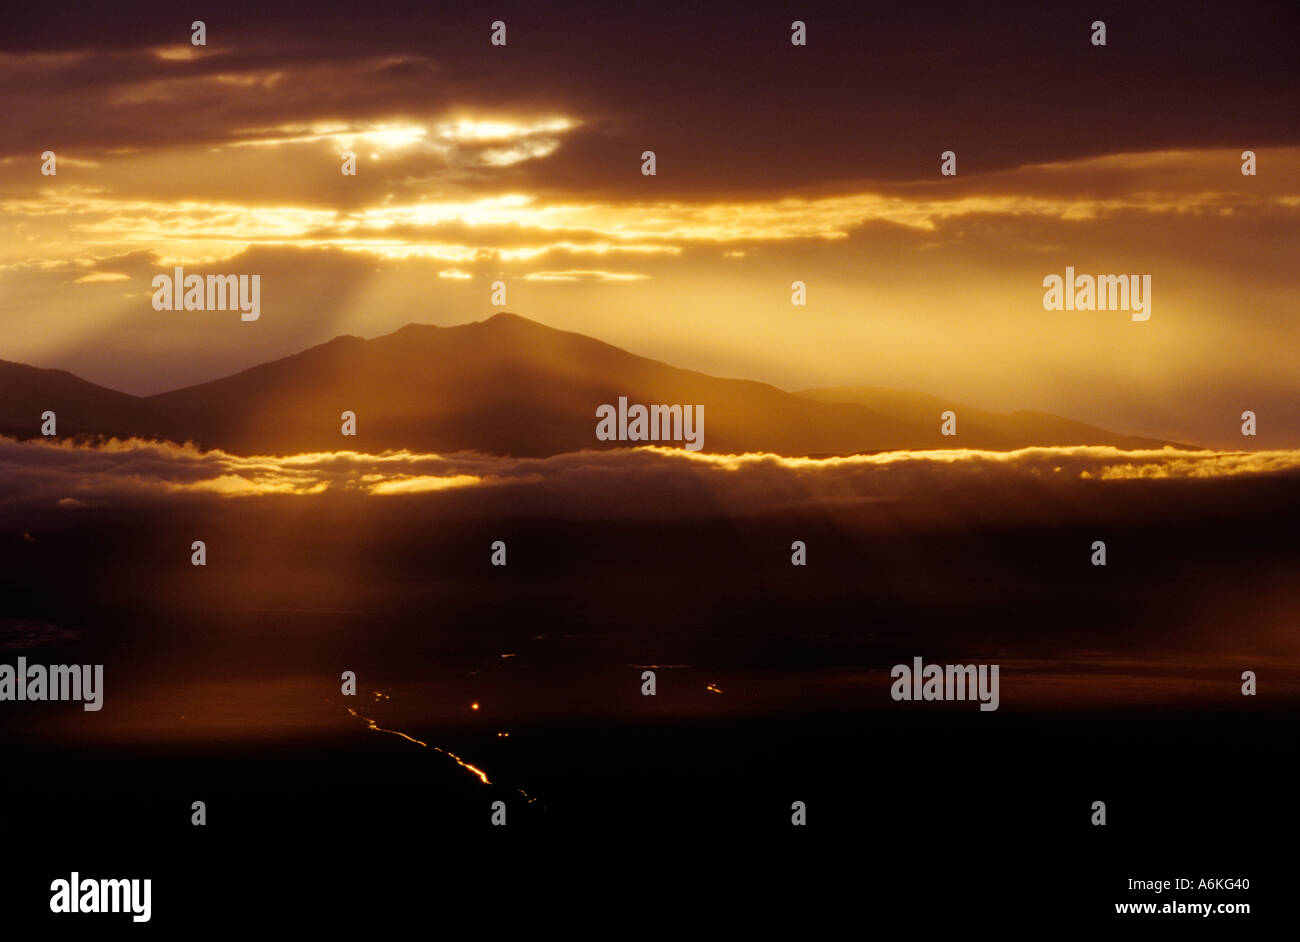 Square Habitat 35 The Sun Sets Over Ngorongoro Crater The Worlds Largest Intact